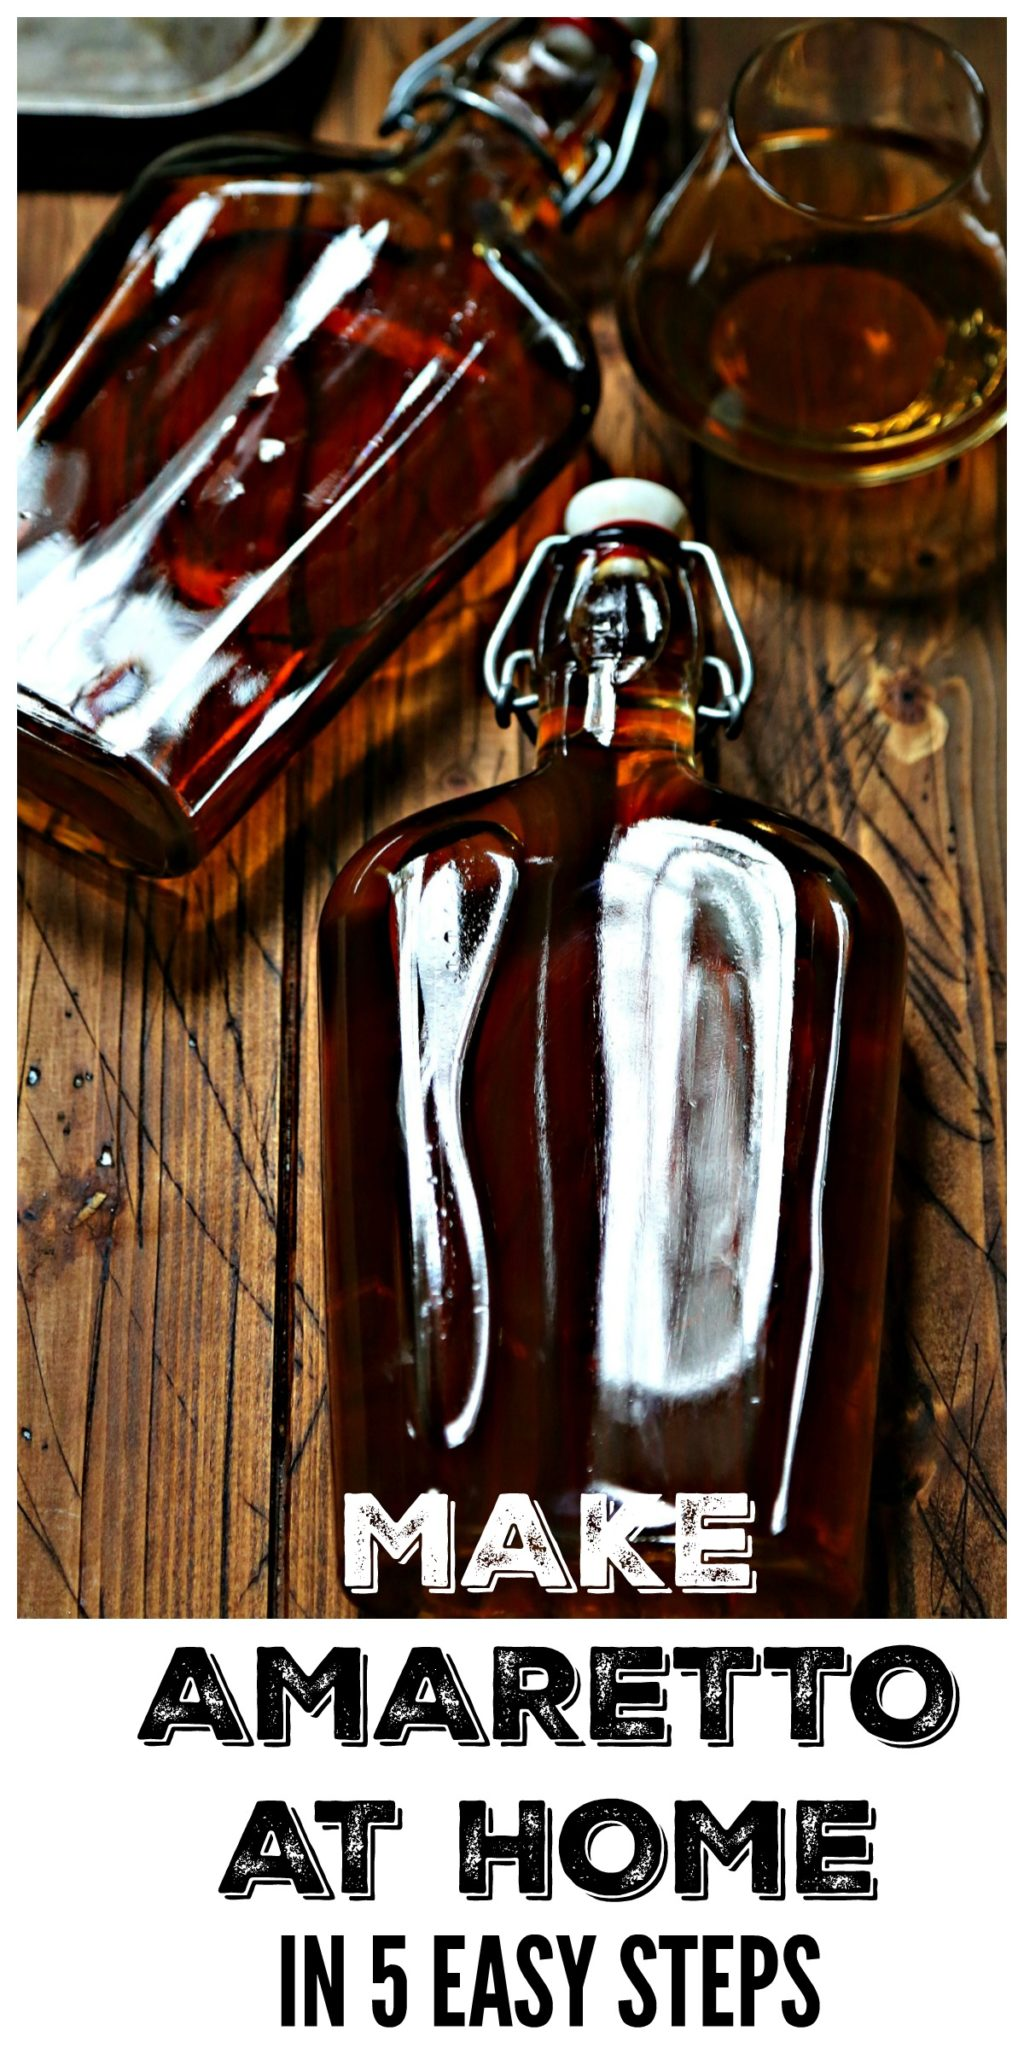 Glass Bottle with stopper of homemade amaretto with small white bowl of brown sugar in background pinterest image via Bell'Alimento